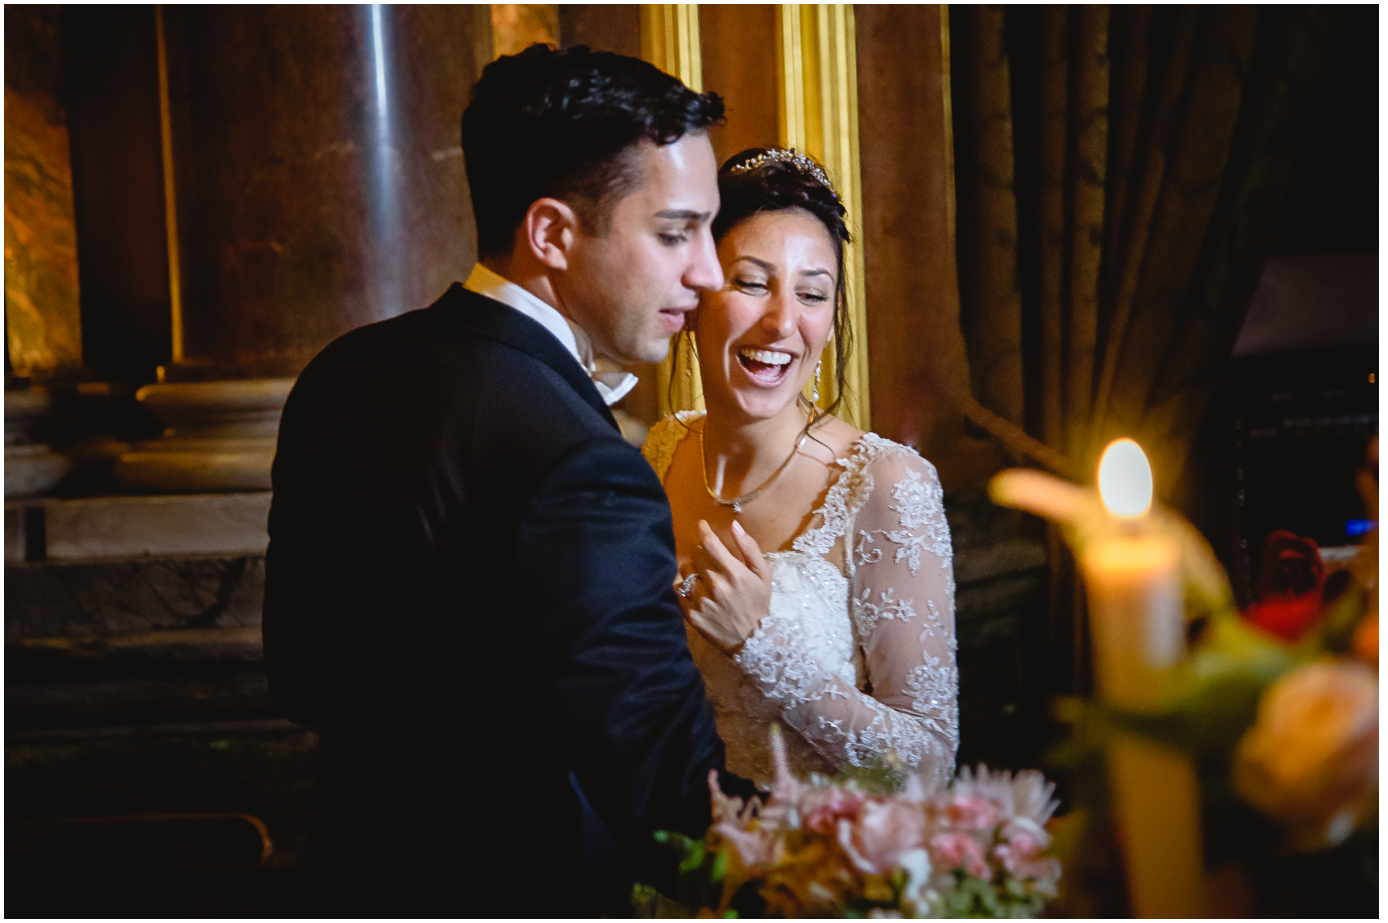 iranian wedding photographer 213 - Drapers Hall London Wedding Photographer